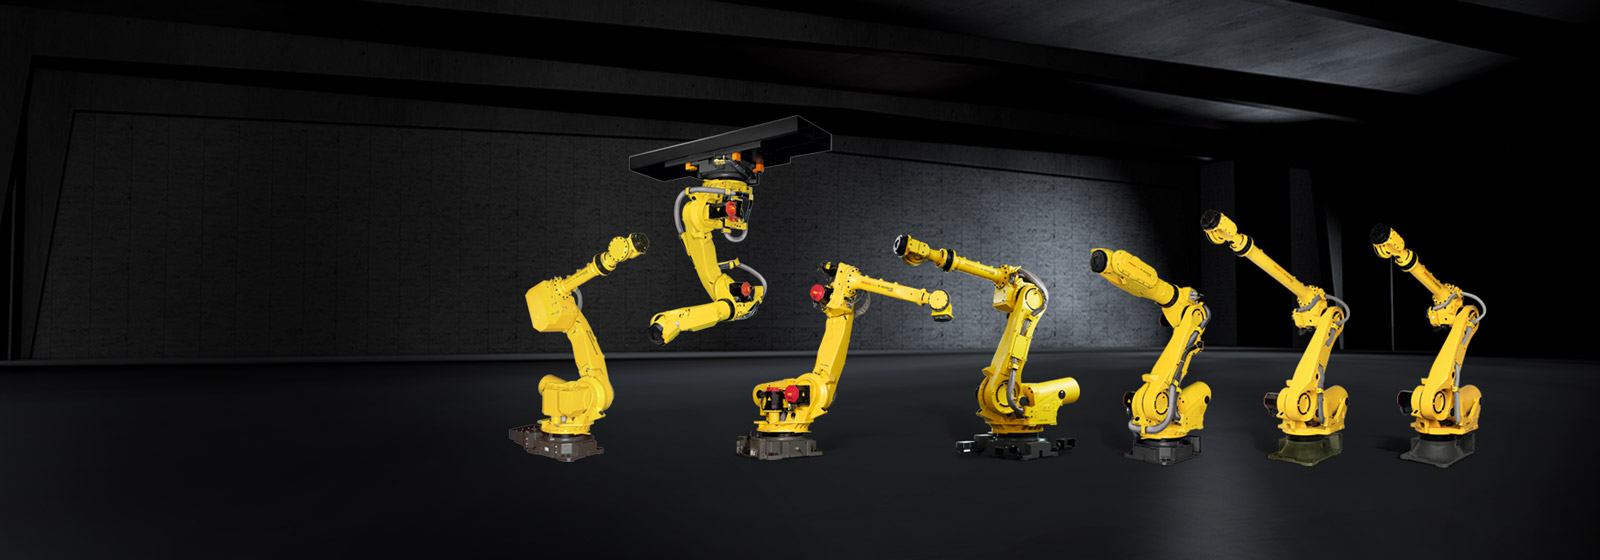 7 R-2000 industrial robots in industry hall